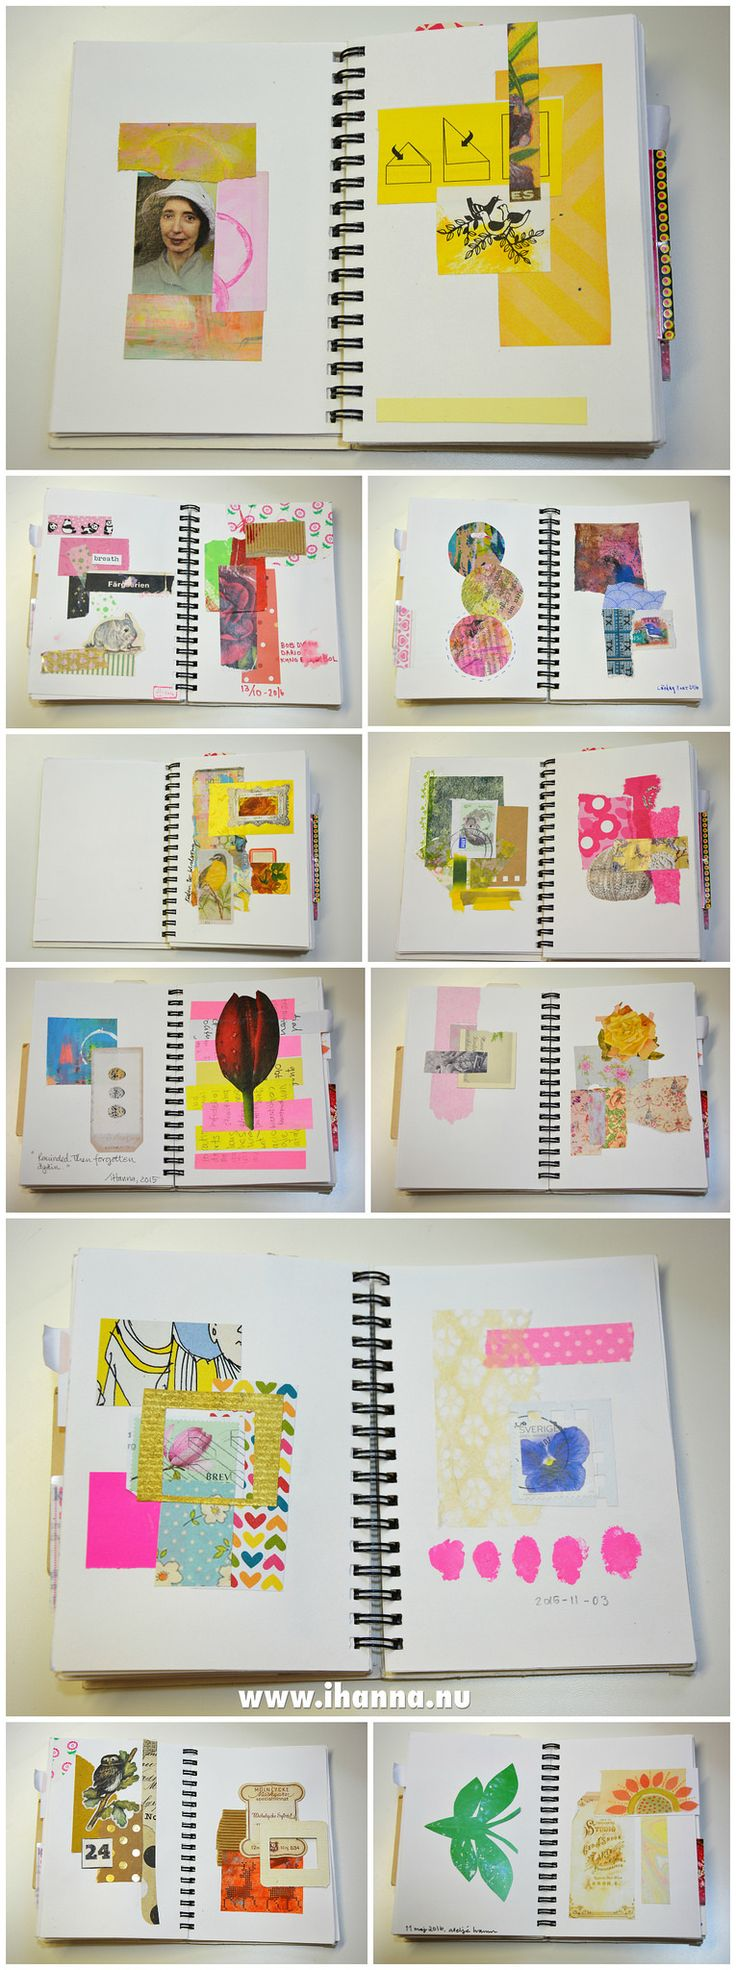 Tiny Scrap Notebook for warm up Collages + flip through video of the whole book made by iHanna #collage